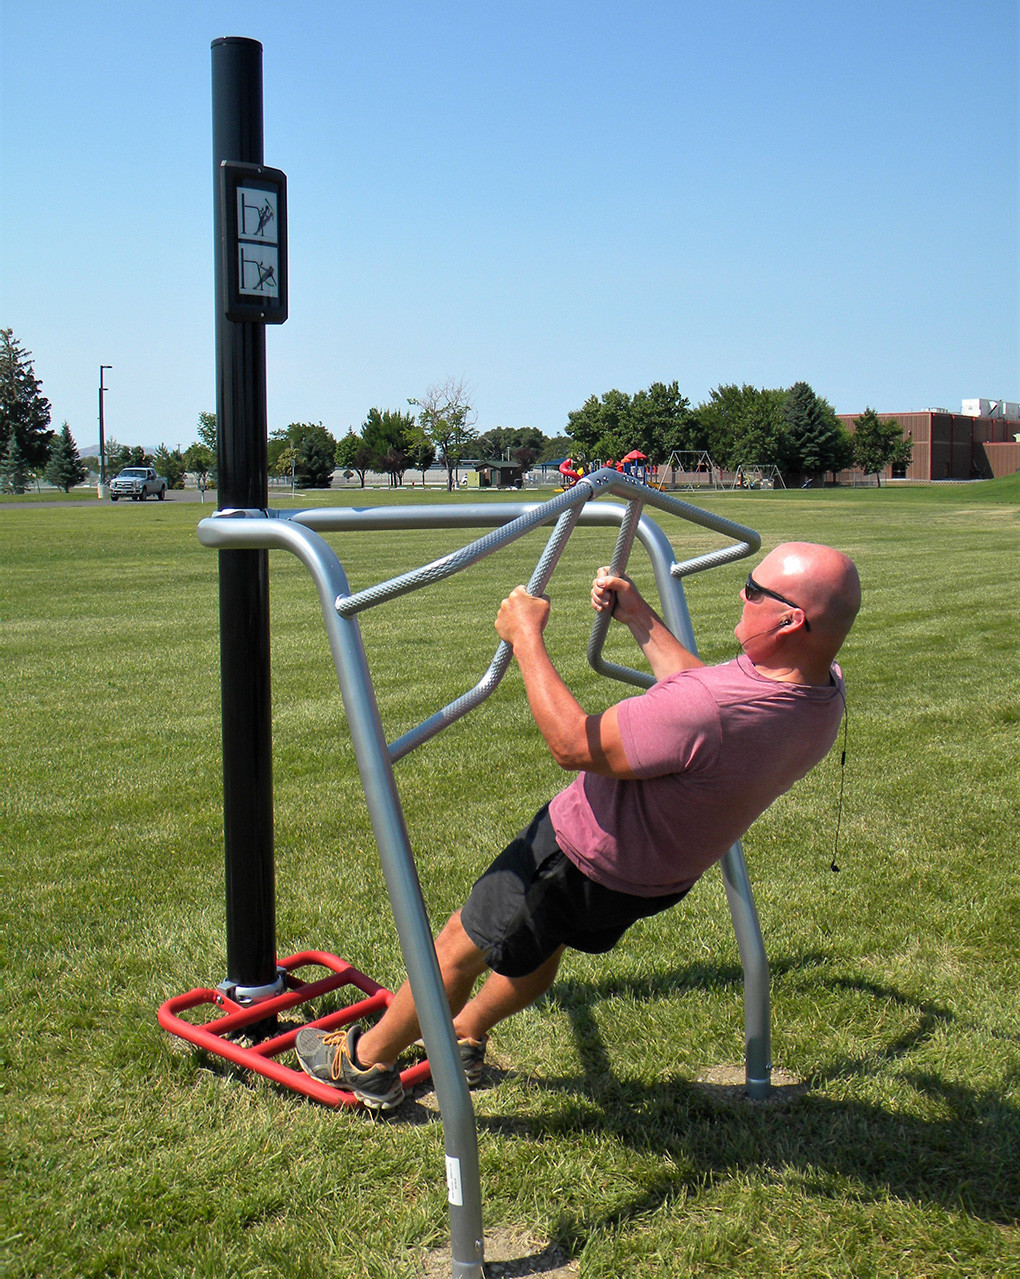 City of Powell employee Tim Jordan demonstrates how to use one of the fitness stations recently installed at Homesteader Park. There are five stations in all, each designed to work a different part of the body.